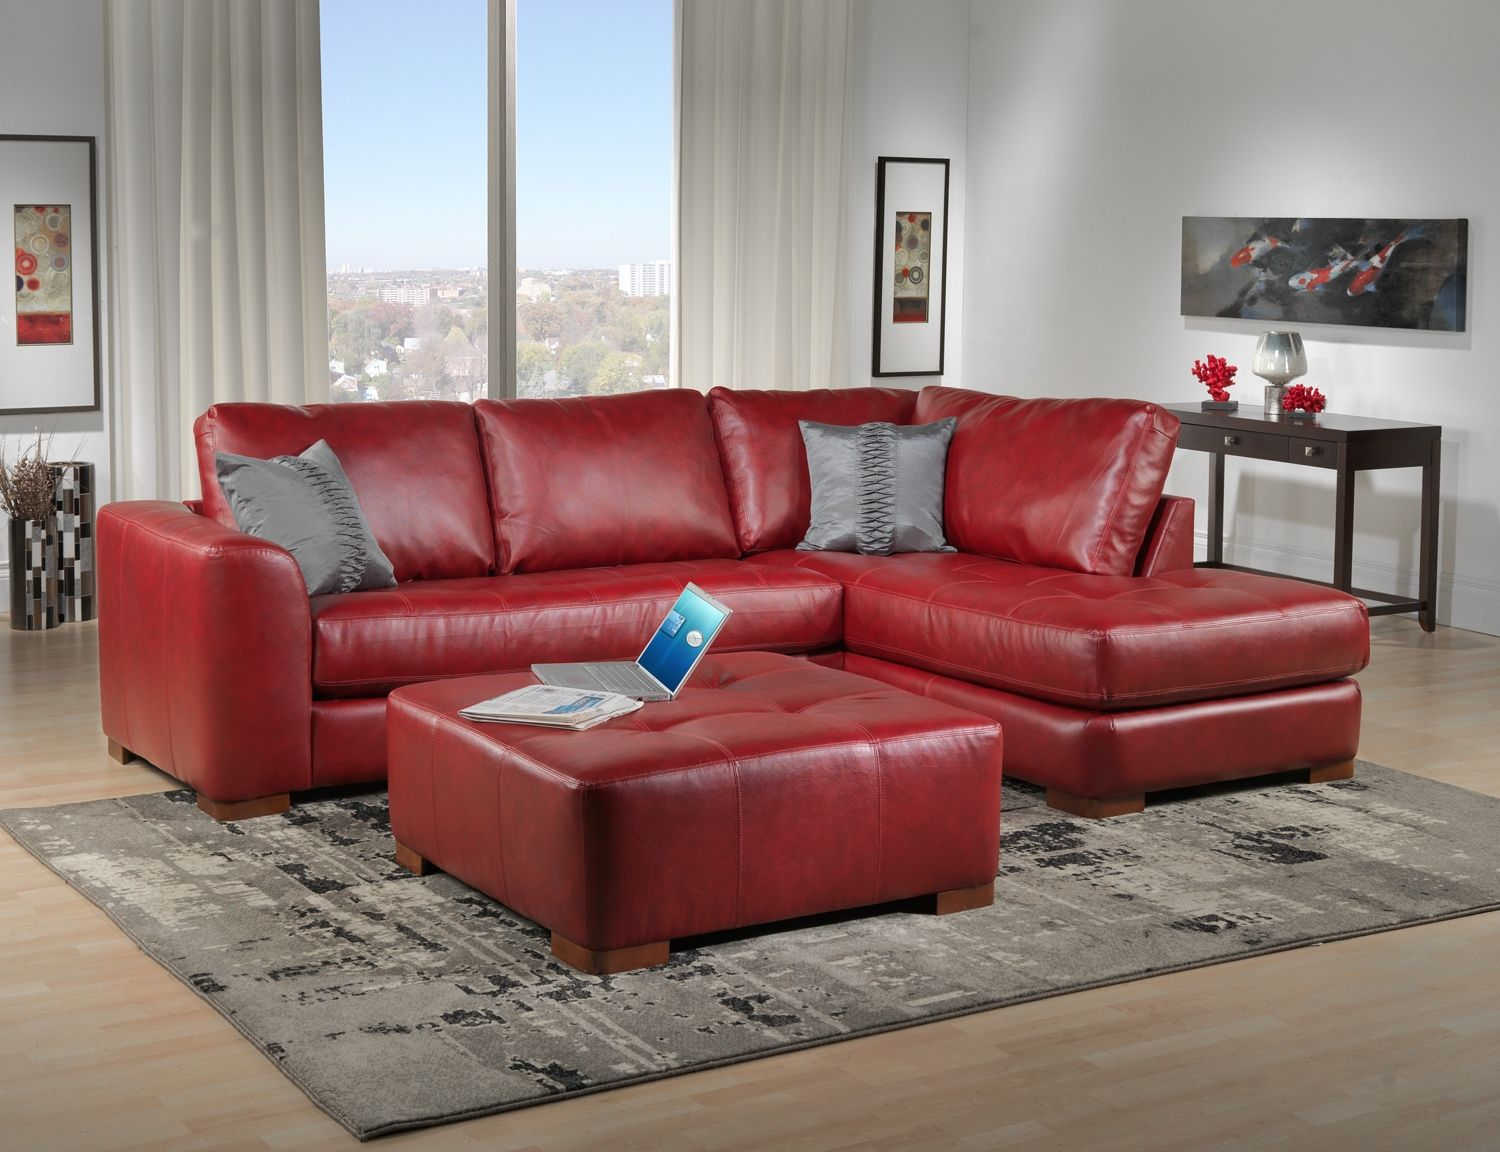 Condo Couches I Want A Red Leather Couch Humble Abode Pinterest